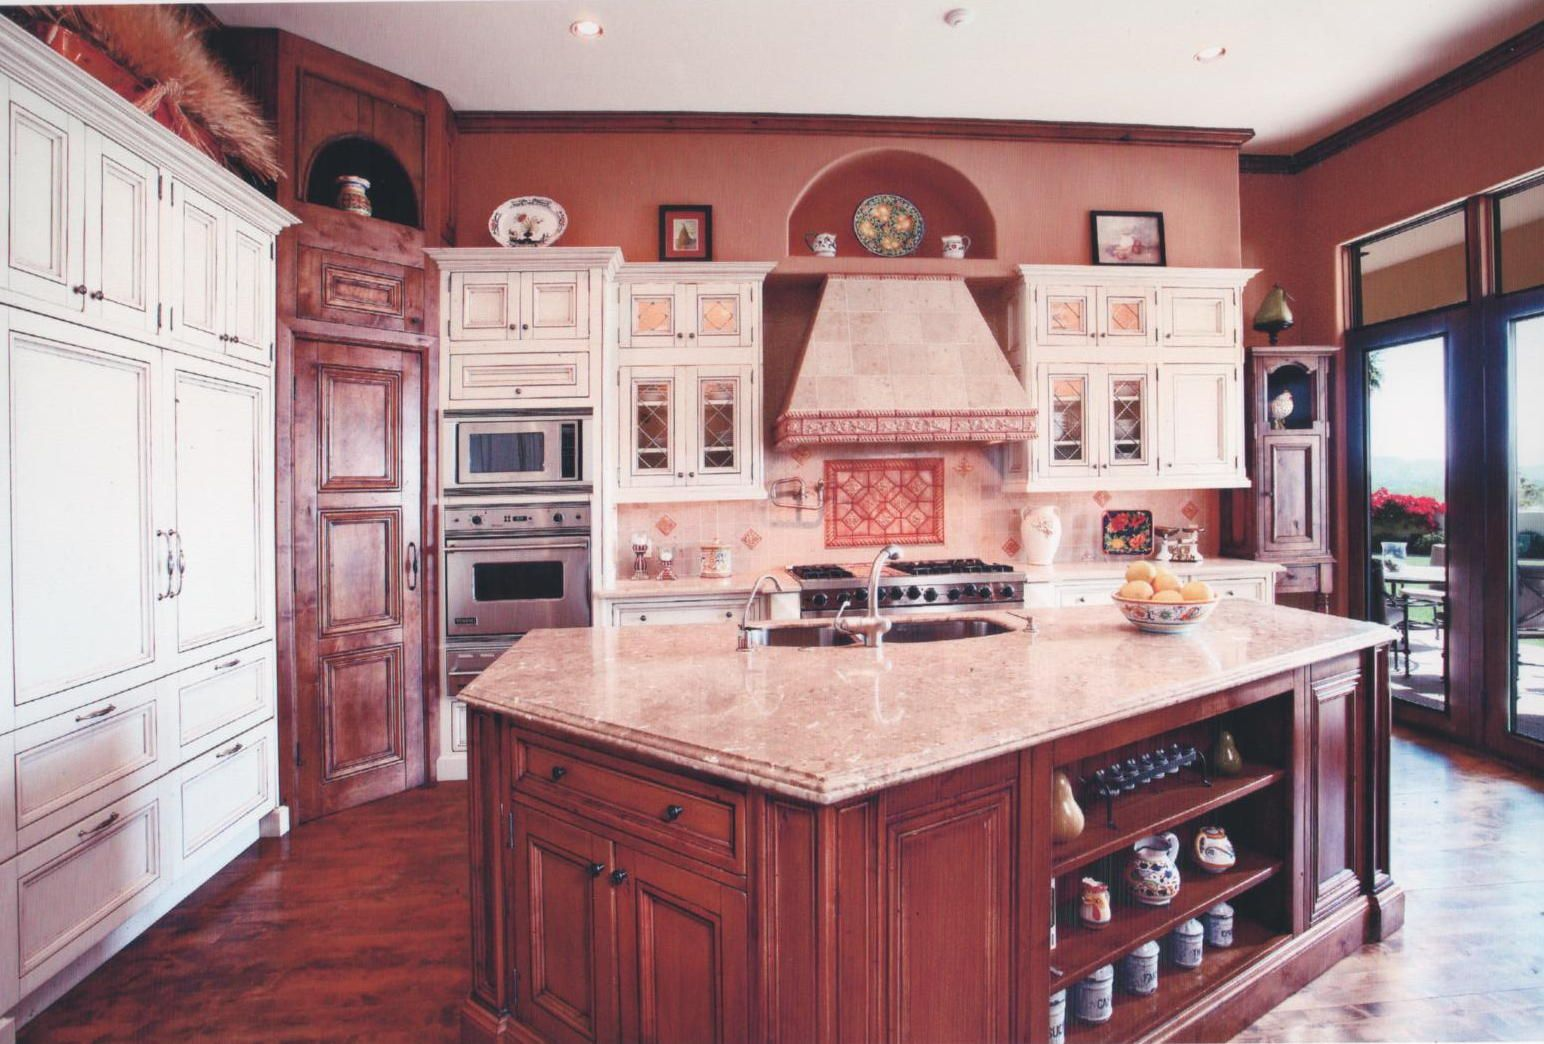 French styling creates a cozy kitchen with warm wood tones and glazed cabinet mixture.